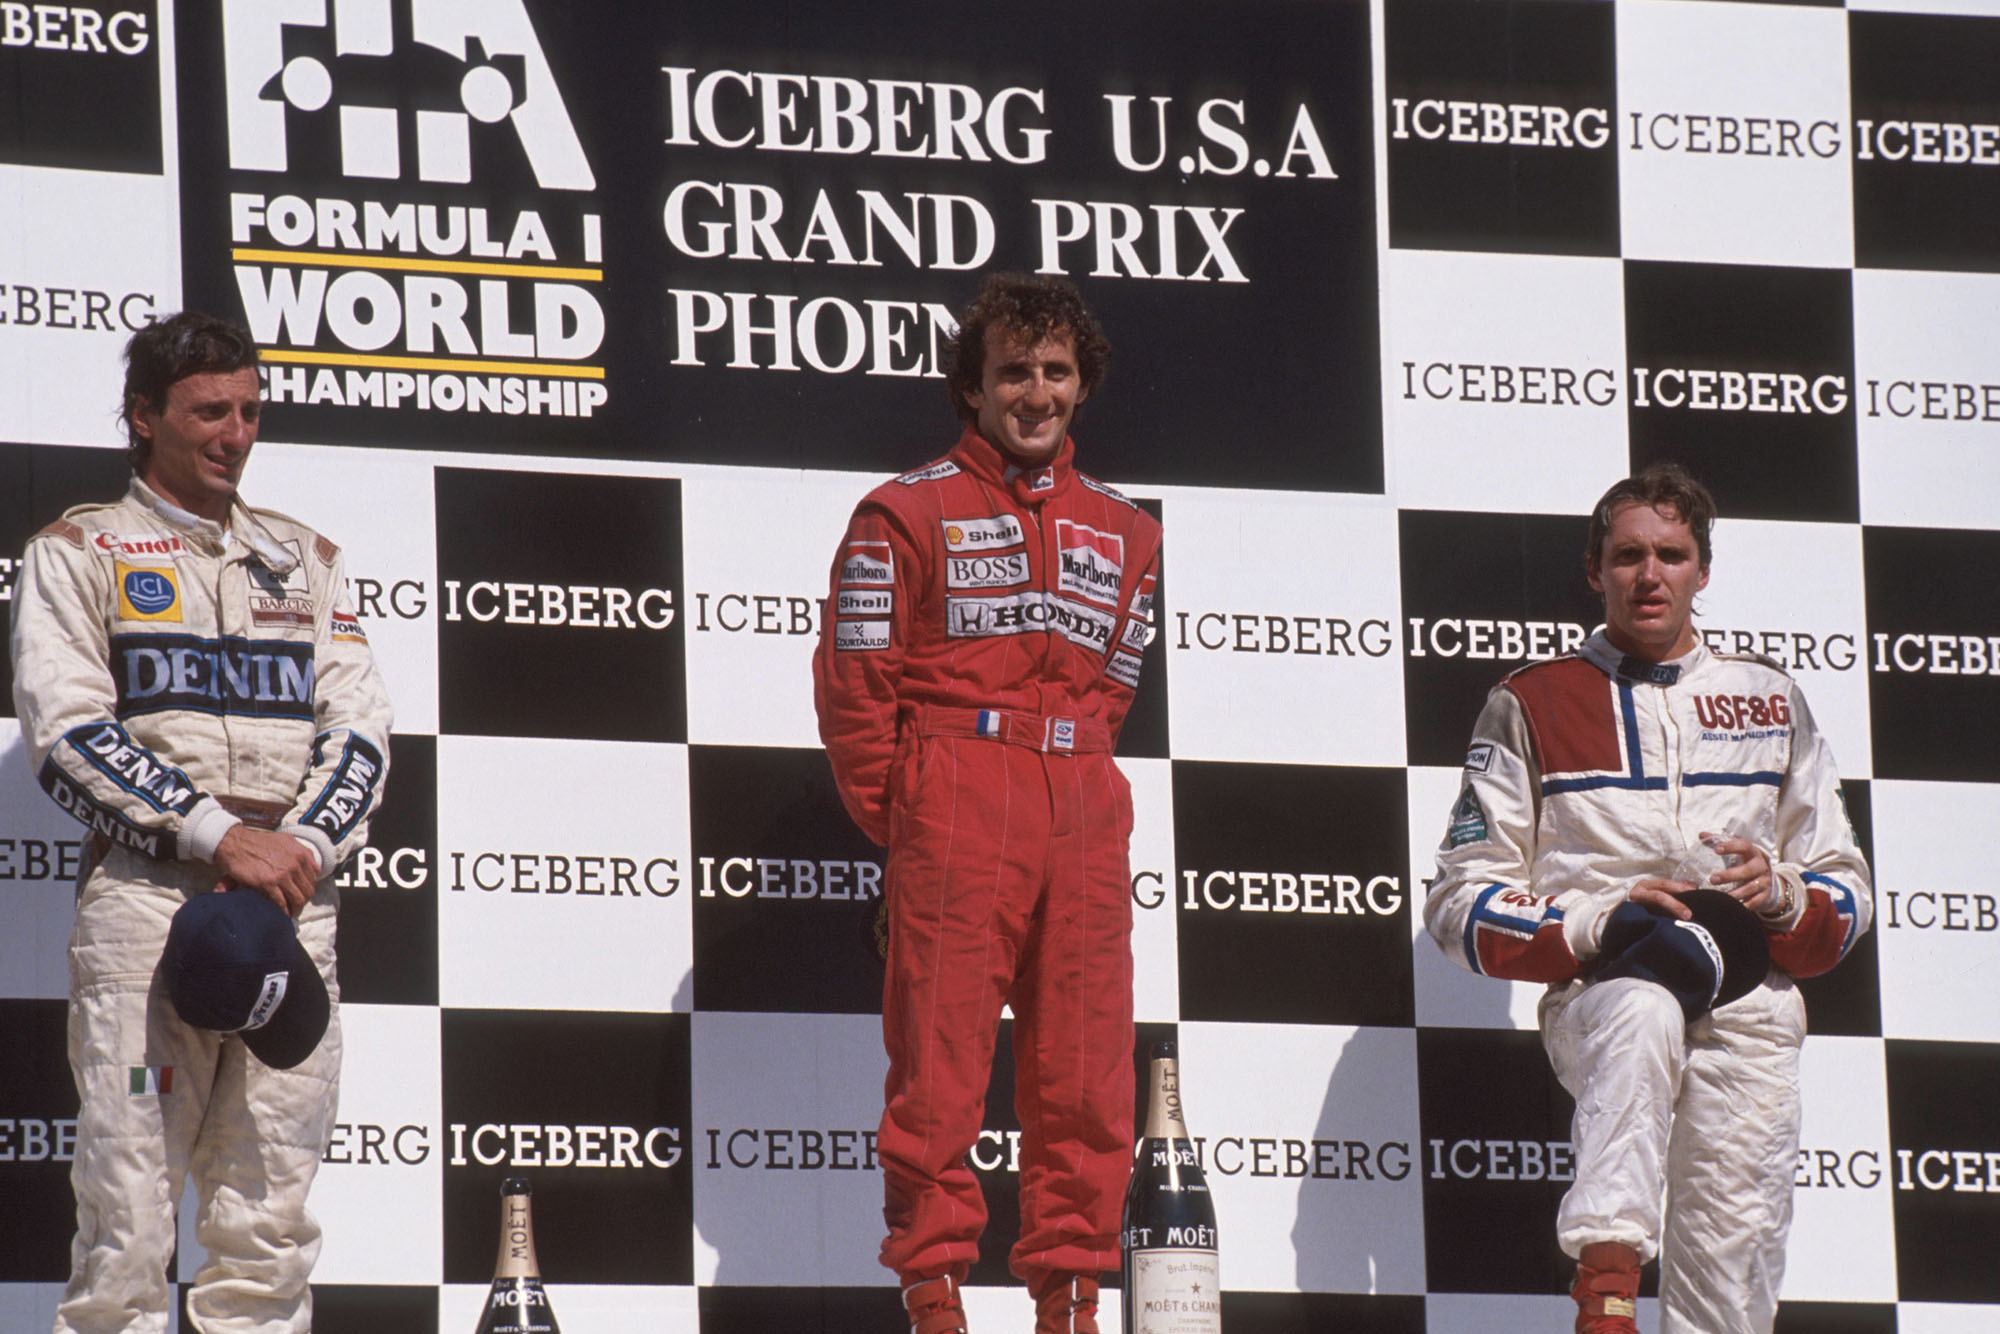 1989 US GP podium